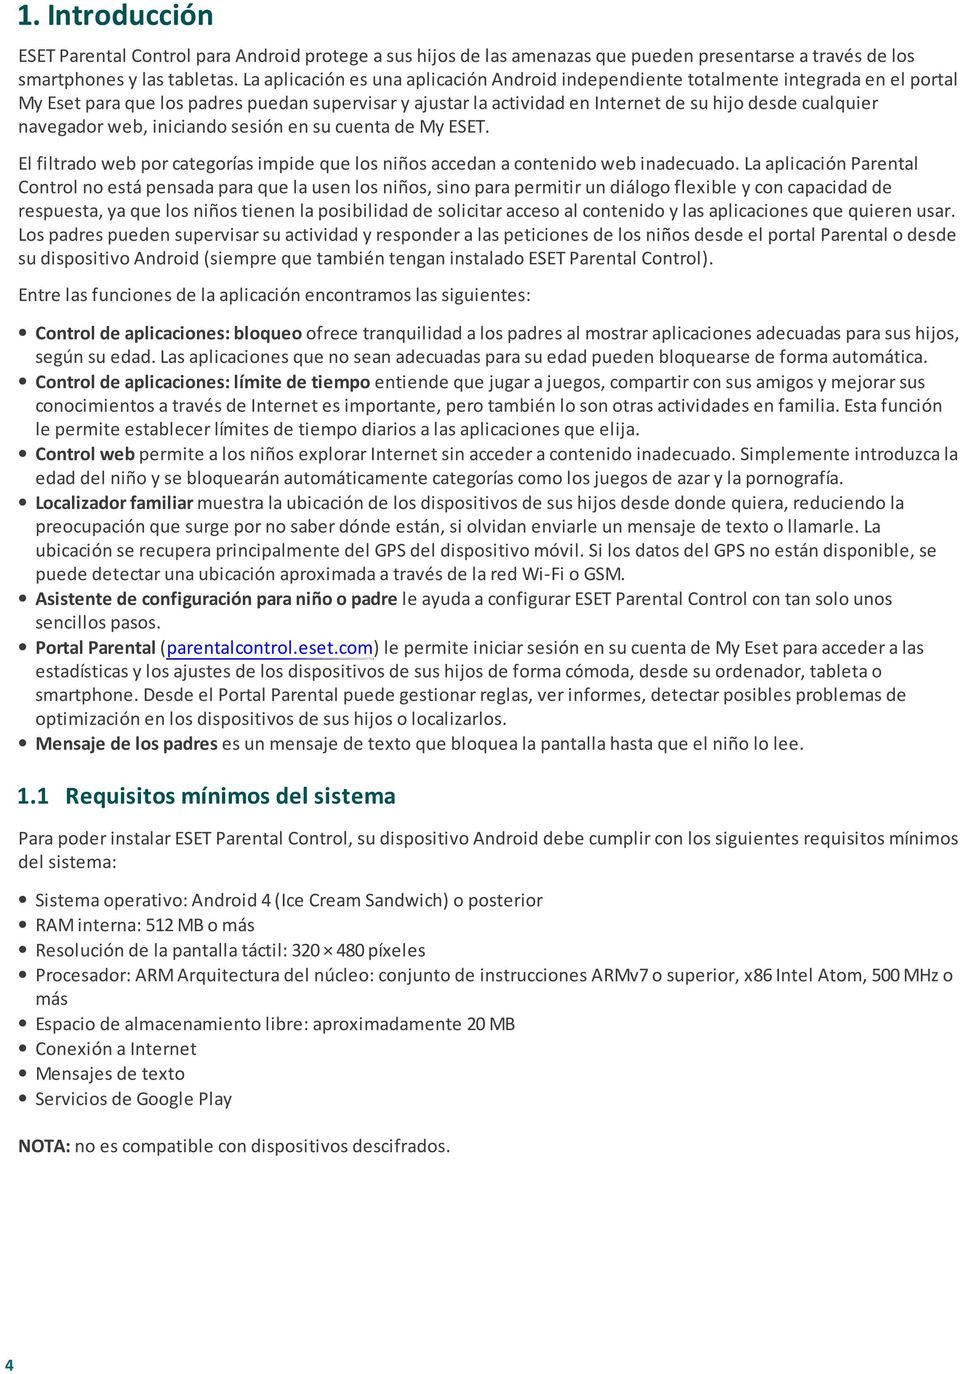 Eset parental control pdf for Arquitectura x86 pdf